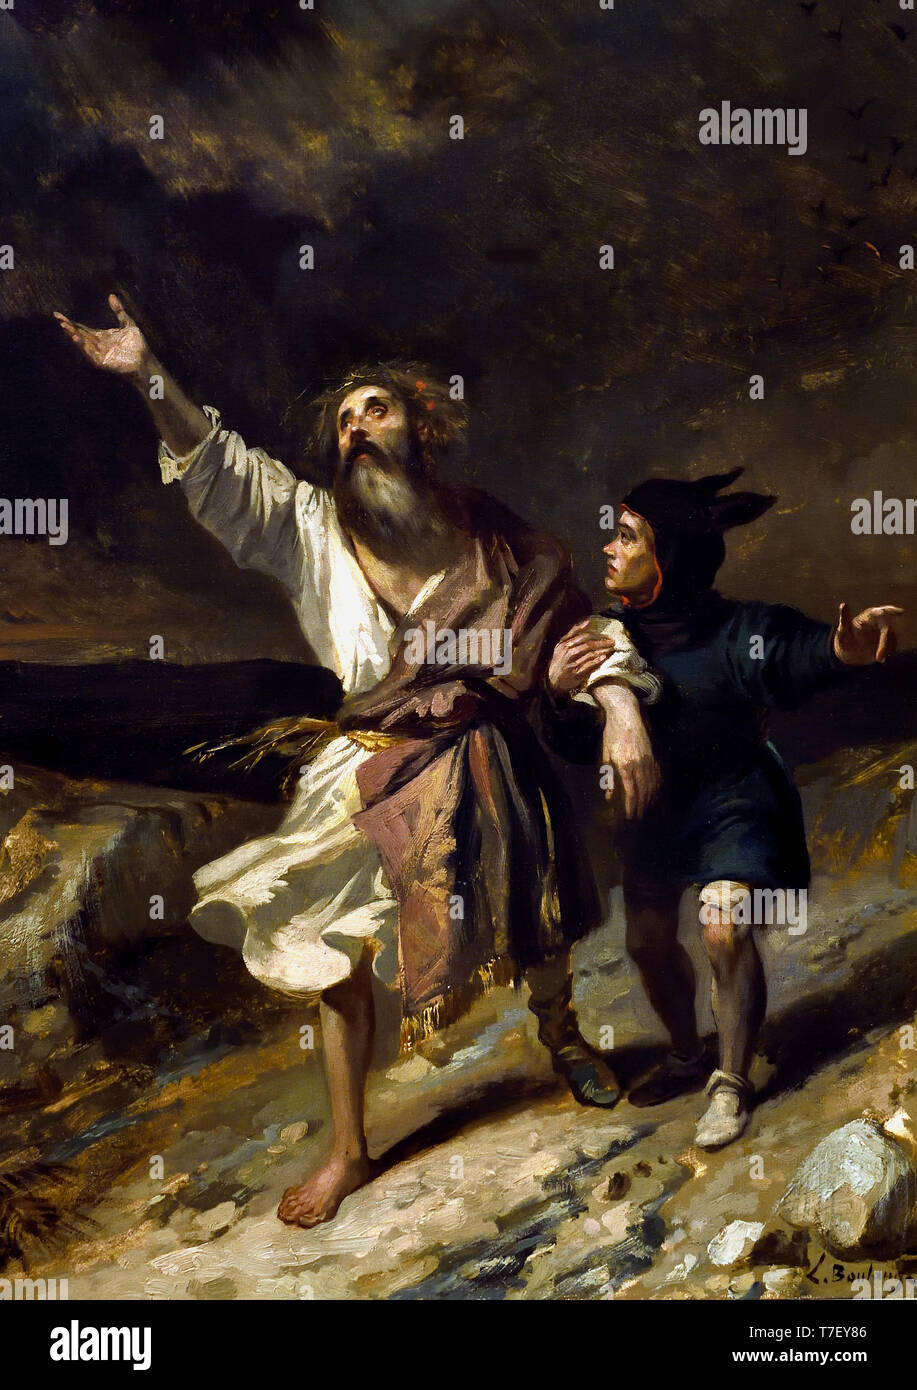 King Lear and his madman during the storm 1836 Boulanger Louis Candide ( 1806 - 1867), France, French, - Stock Image